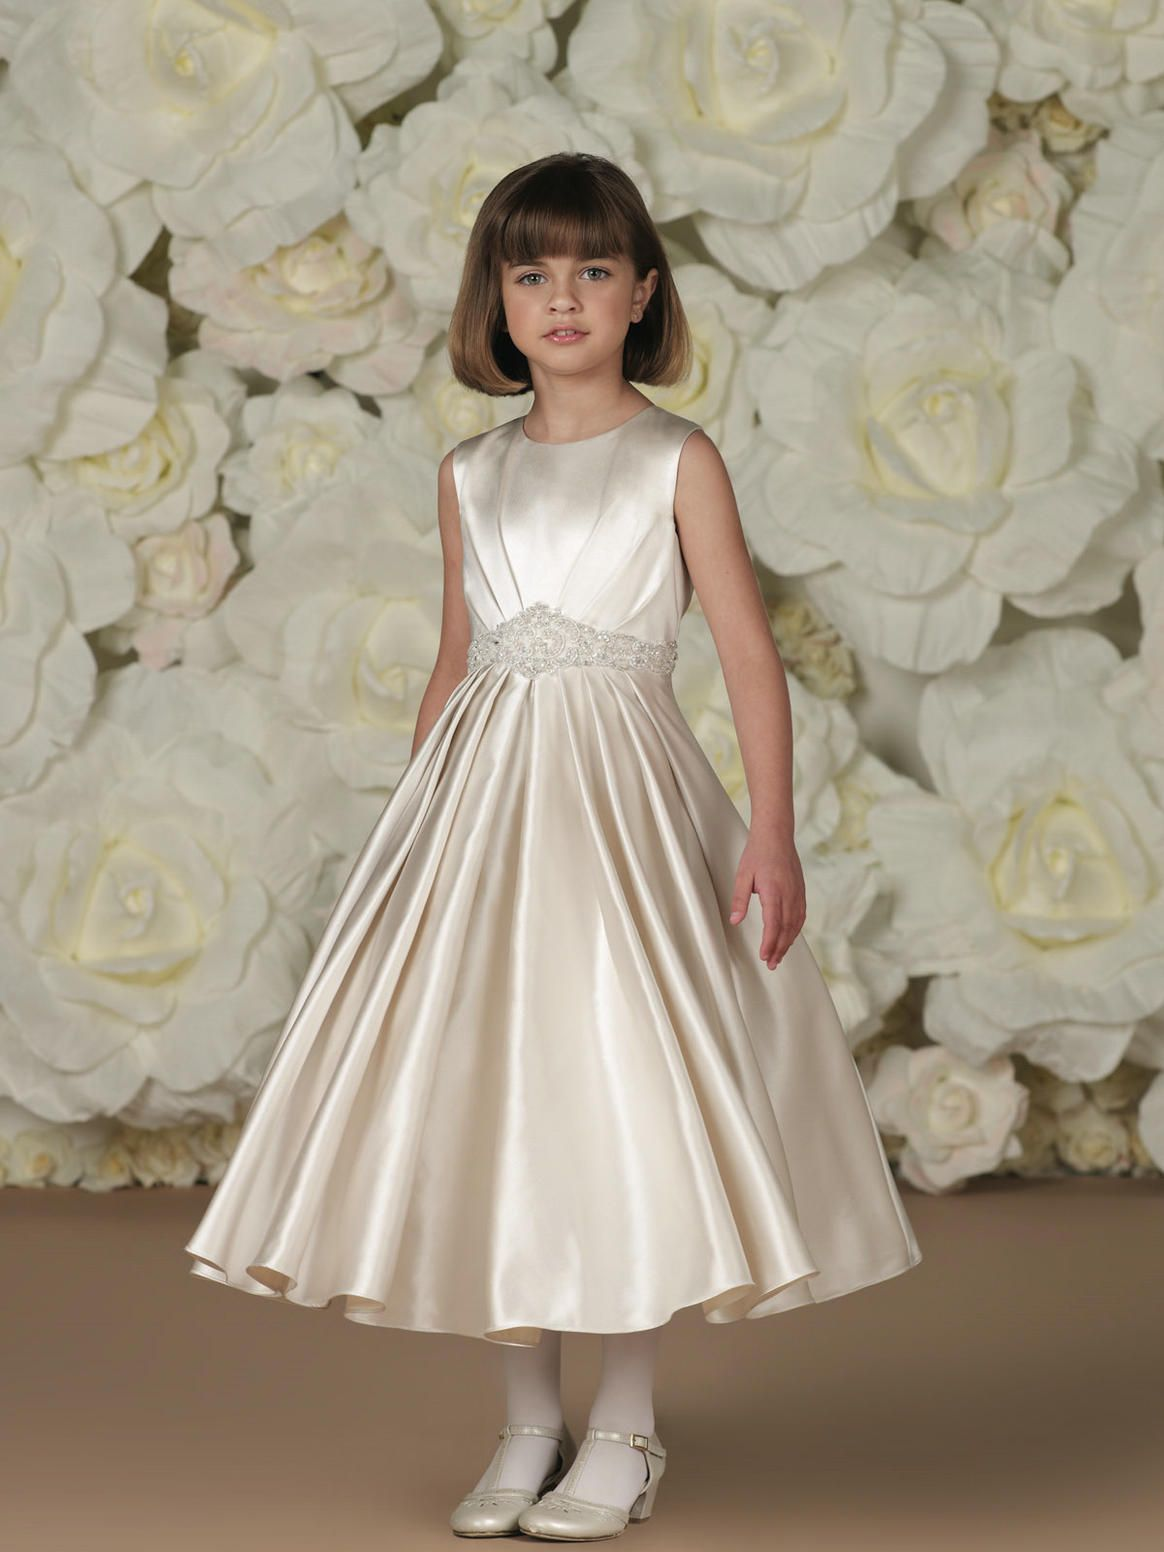 Little girl dresses | Little Fashionistas | Pinterest | Satin, The ...